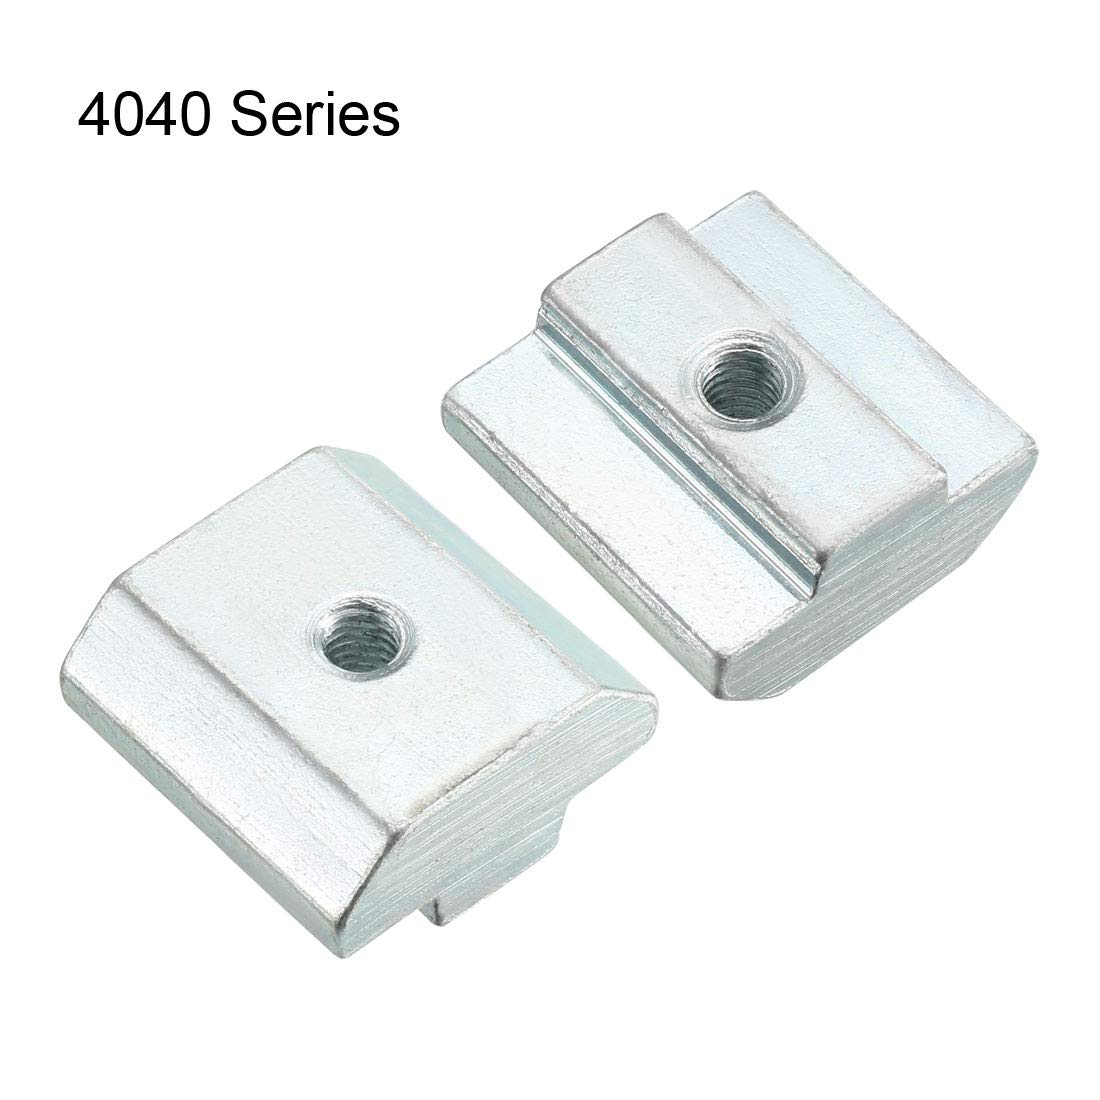 Pack of 12 uxcell Slide in T-Nut M8 Threaded for 4040 Series Aluminum Extrusions Profile